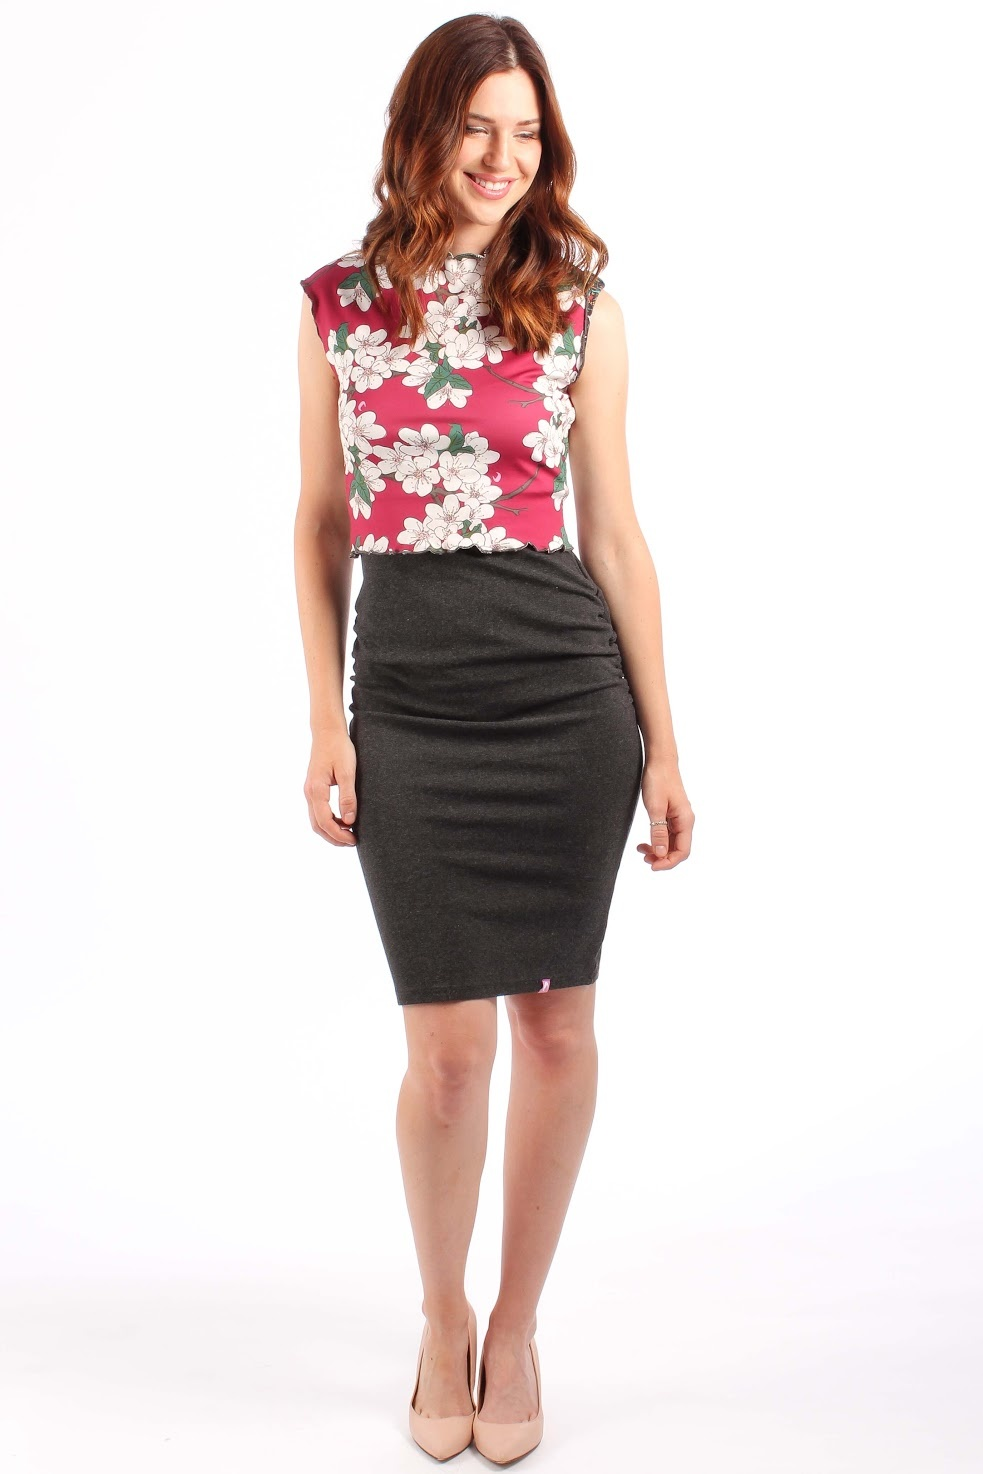 Lait De Poule LDP pencil skirt base dress grey